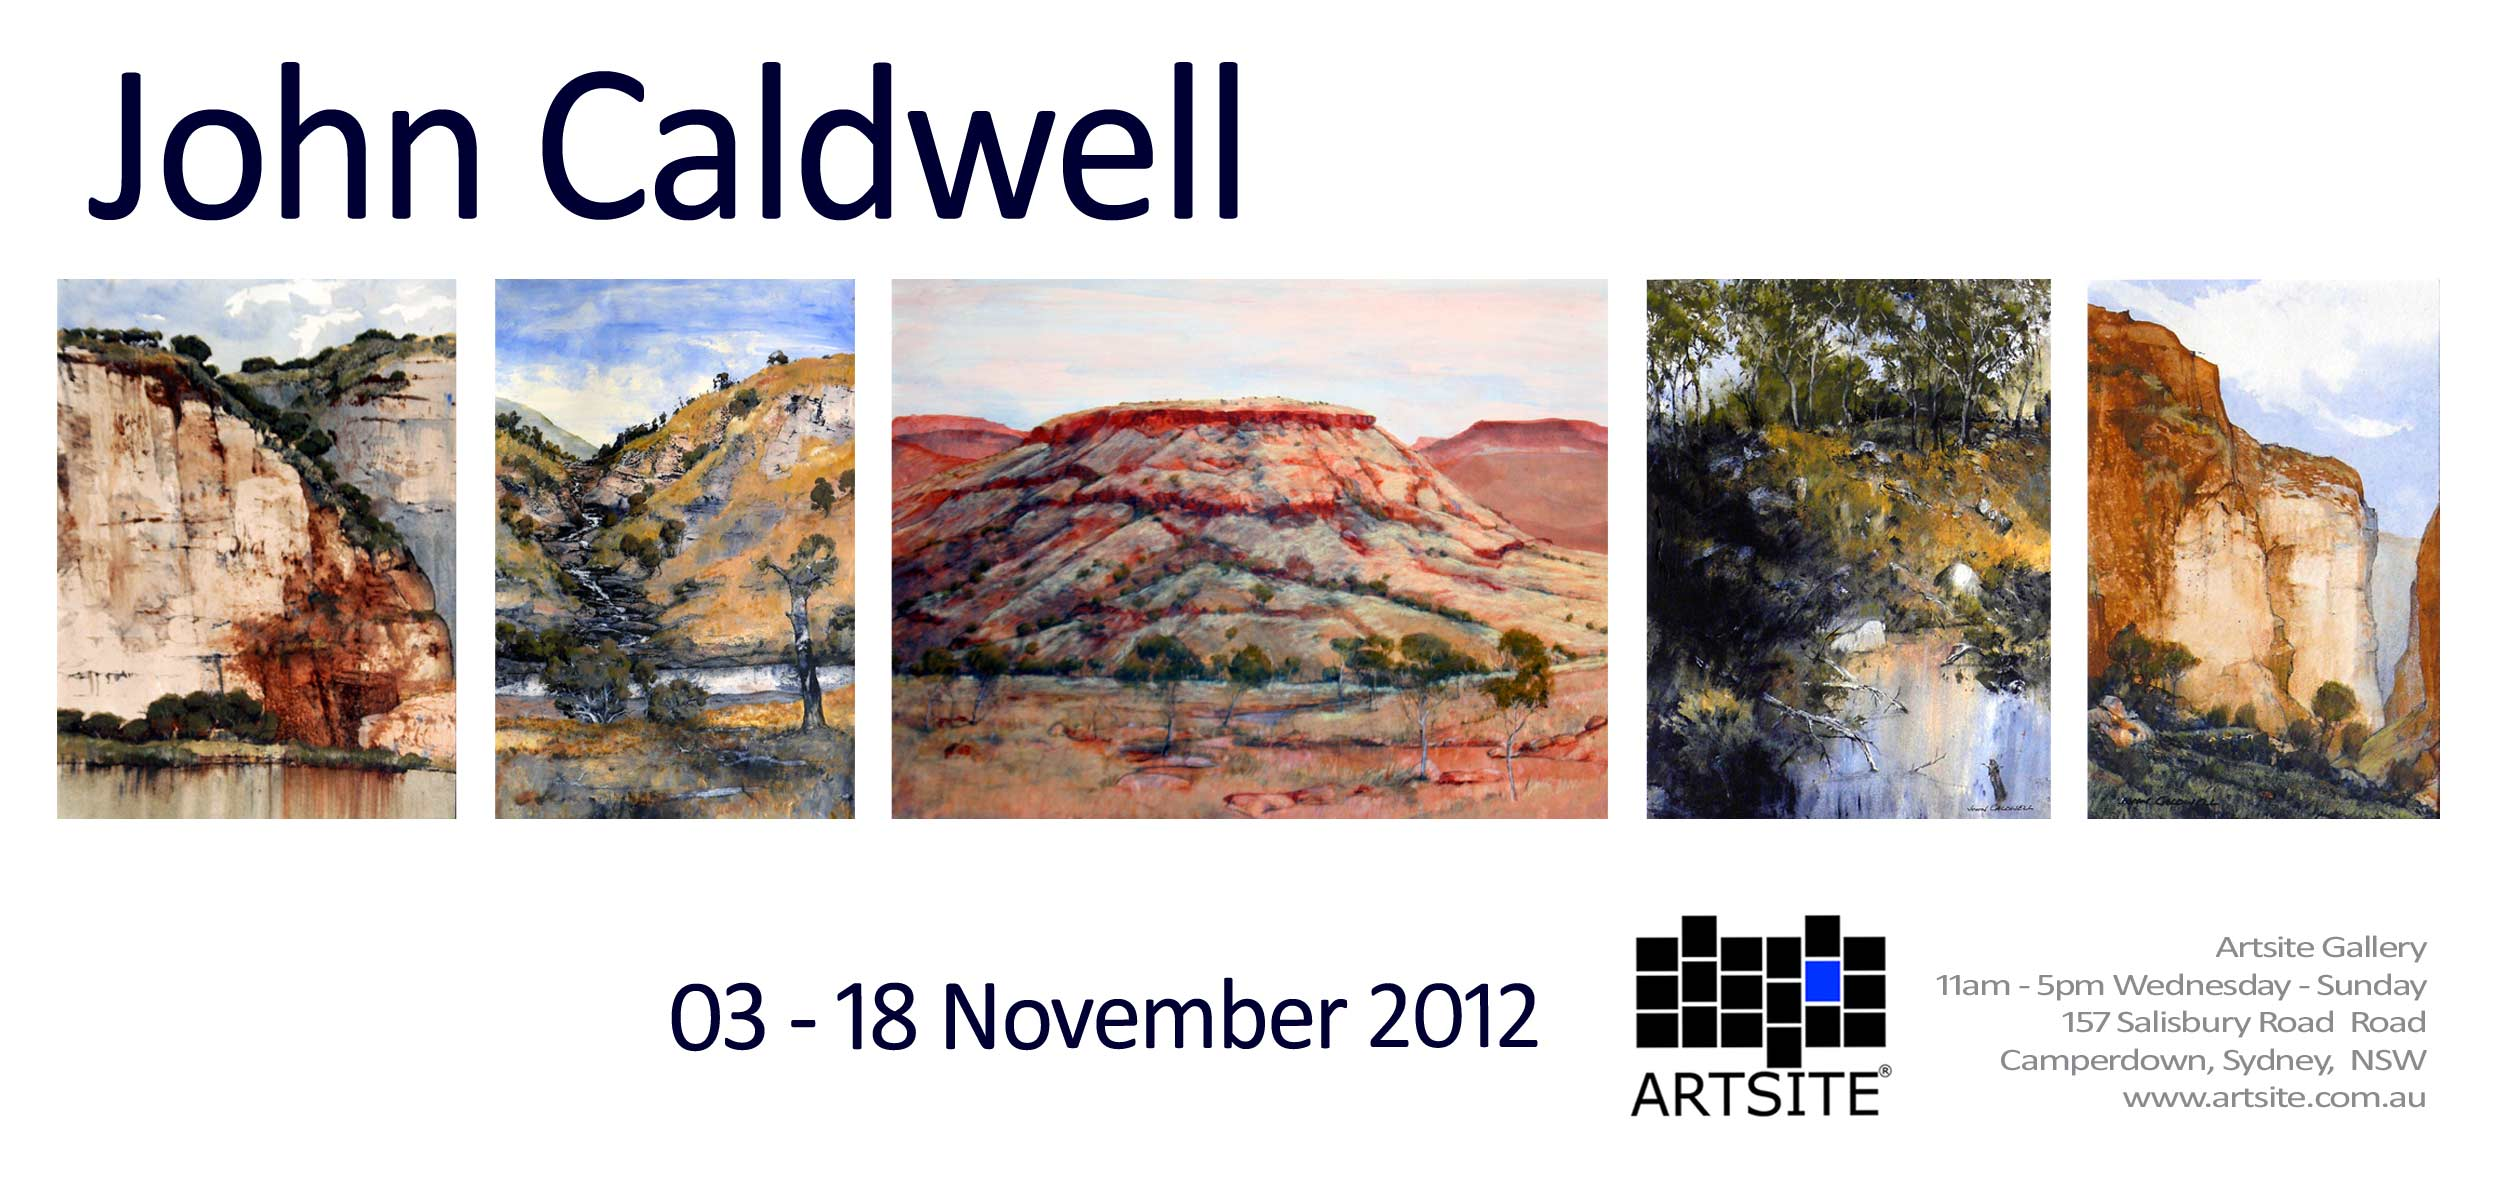 View Exhibition at Artsite Gallery, Sydney: John Caldwell - New Paintings. 03 - 18 November 2012.